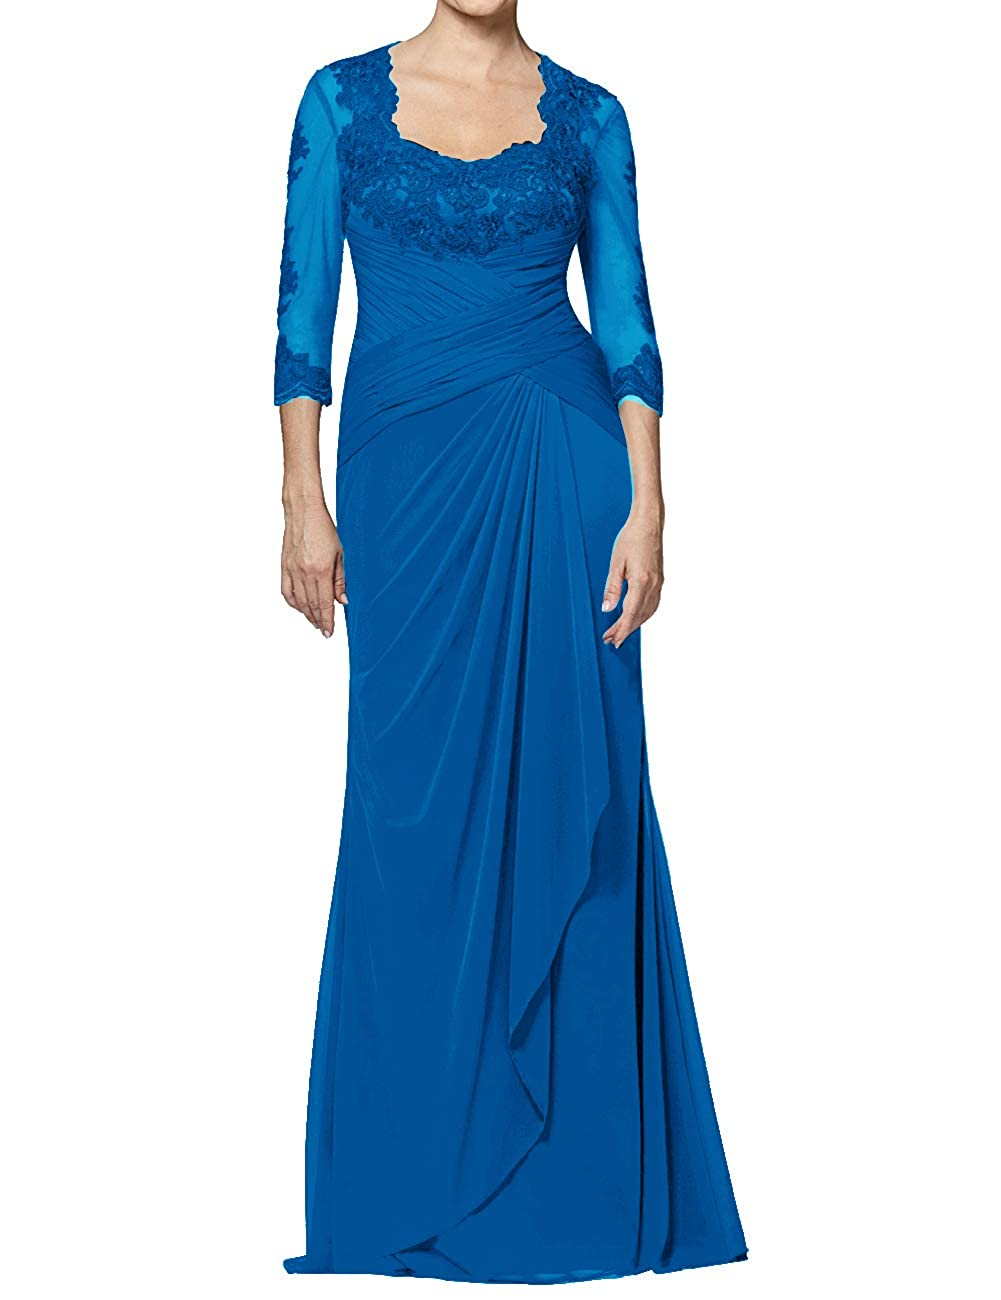 bluee Mother of The Bride Dresses Long Appliques Evening Party Prom Gown for Women